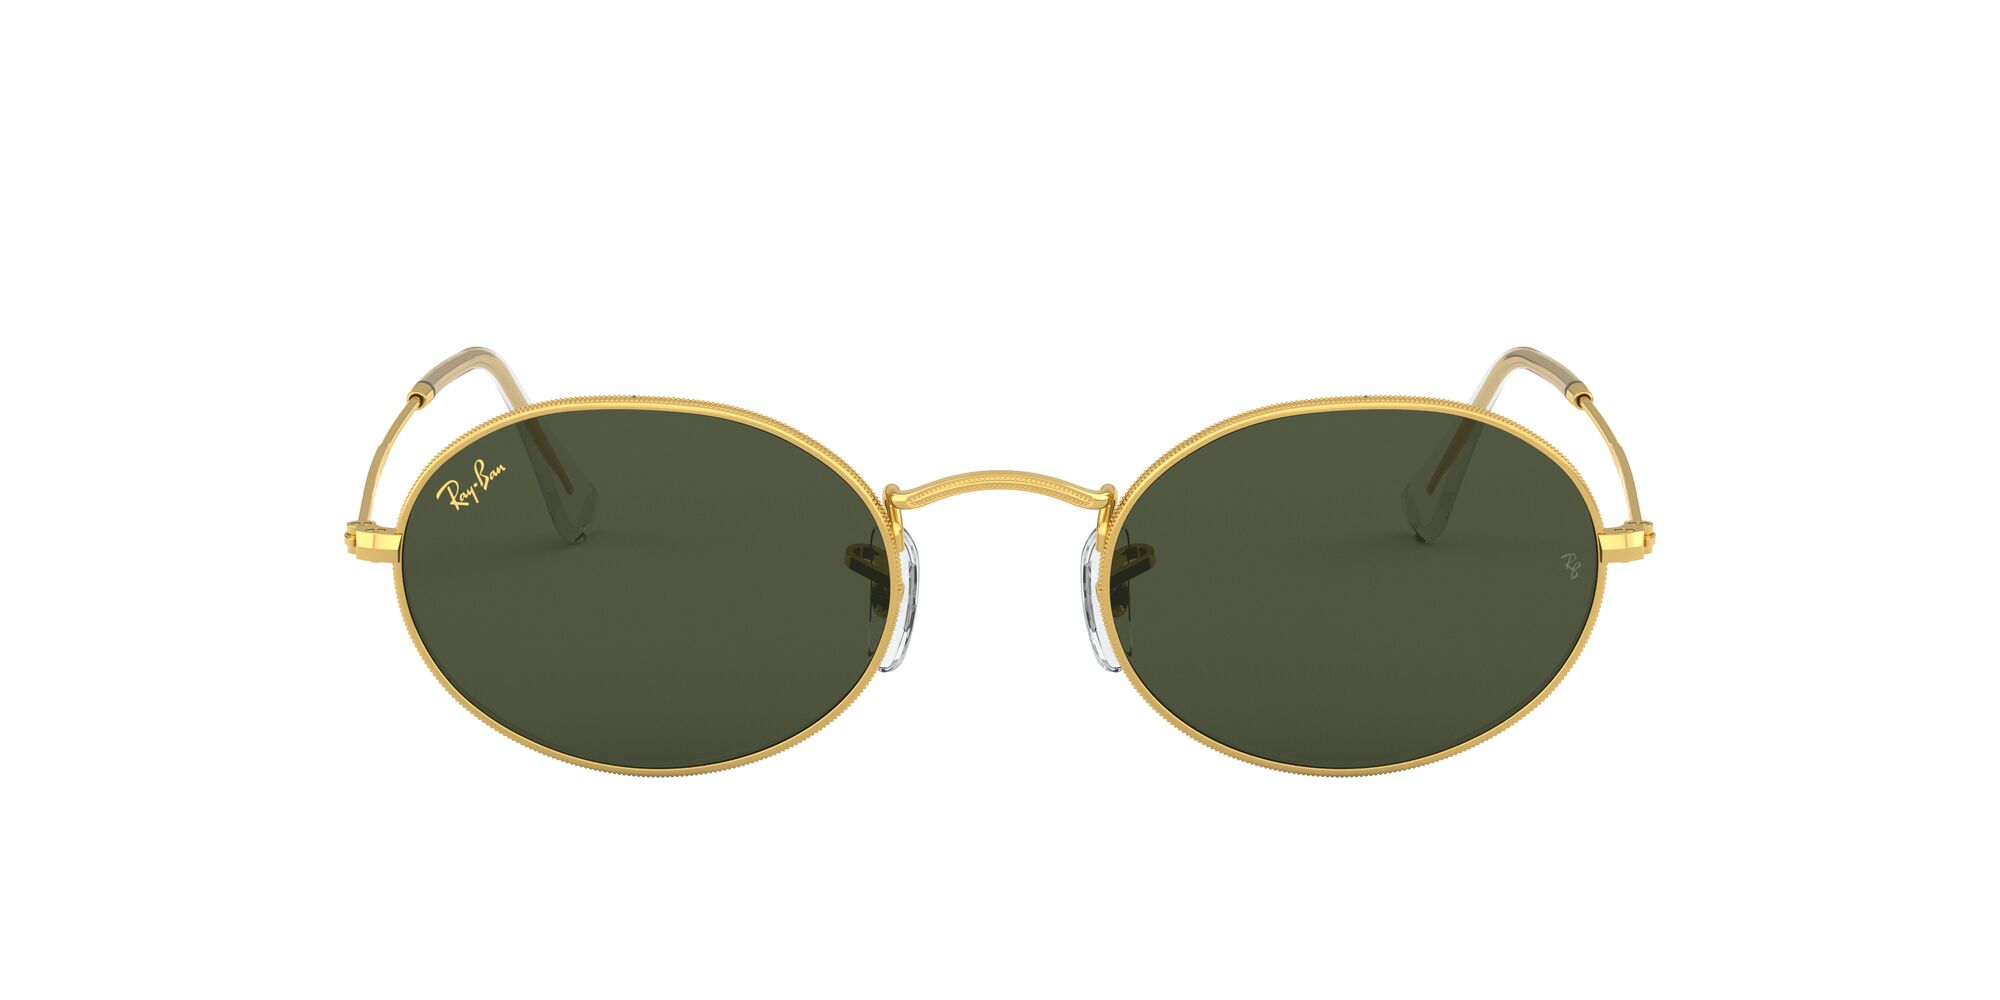 Front Ray-Ban Ray-Ban 0RB3547 919631 53/21 Goud/Groen